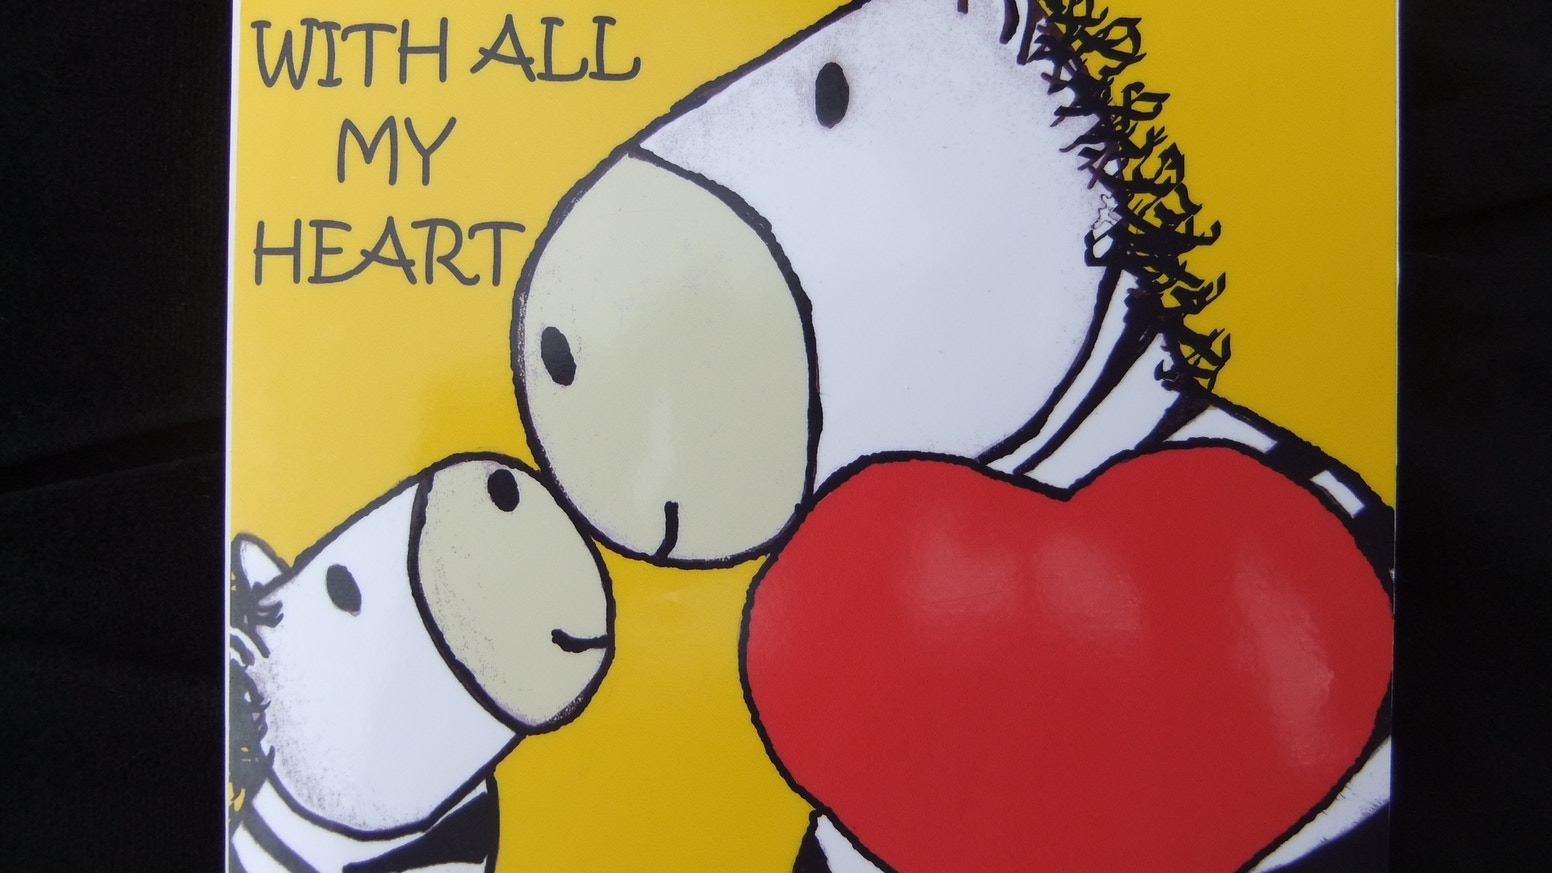 I Love You With All My Heart A Children S Book By Shawna Petersen